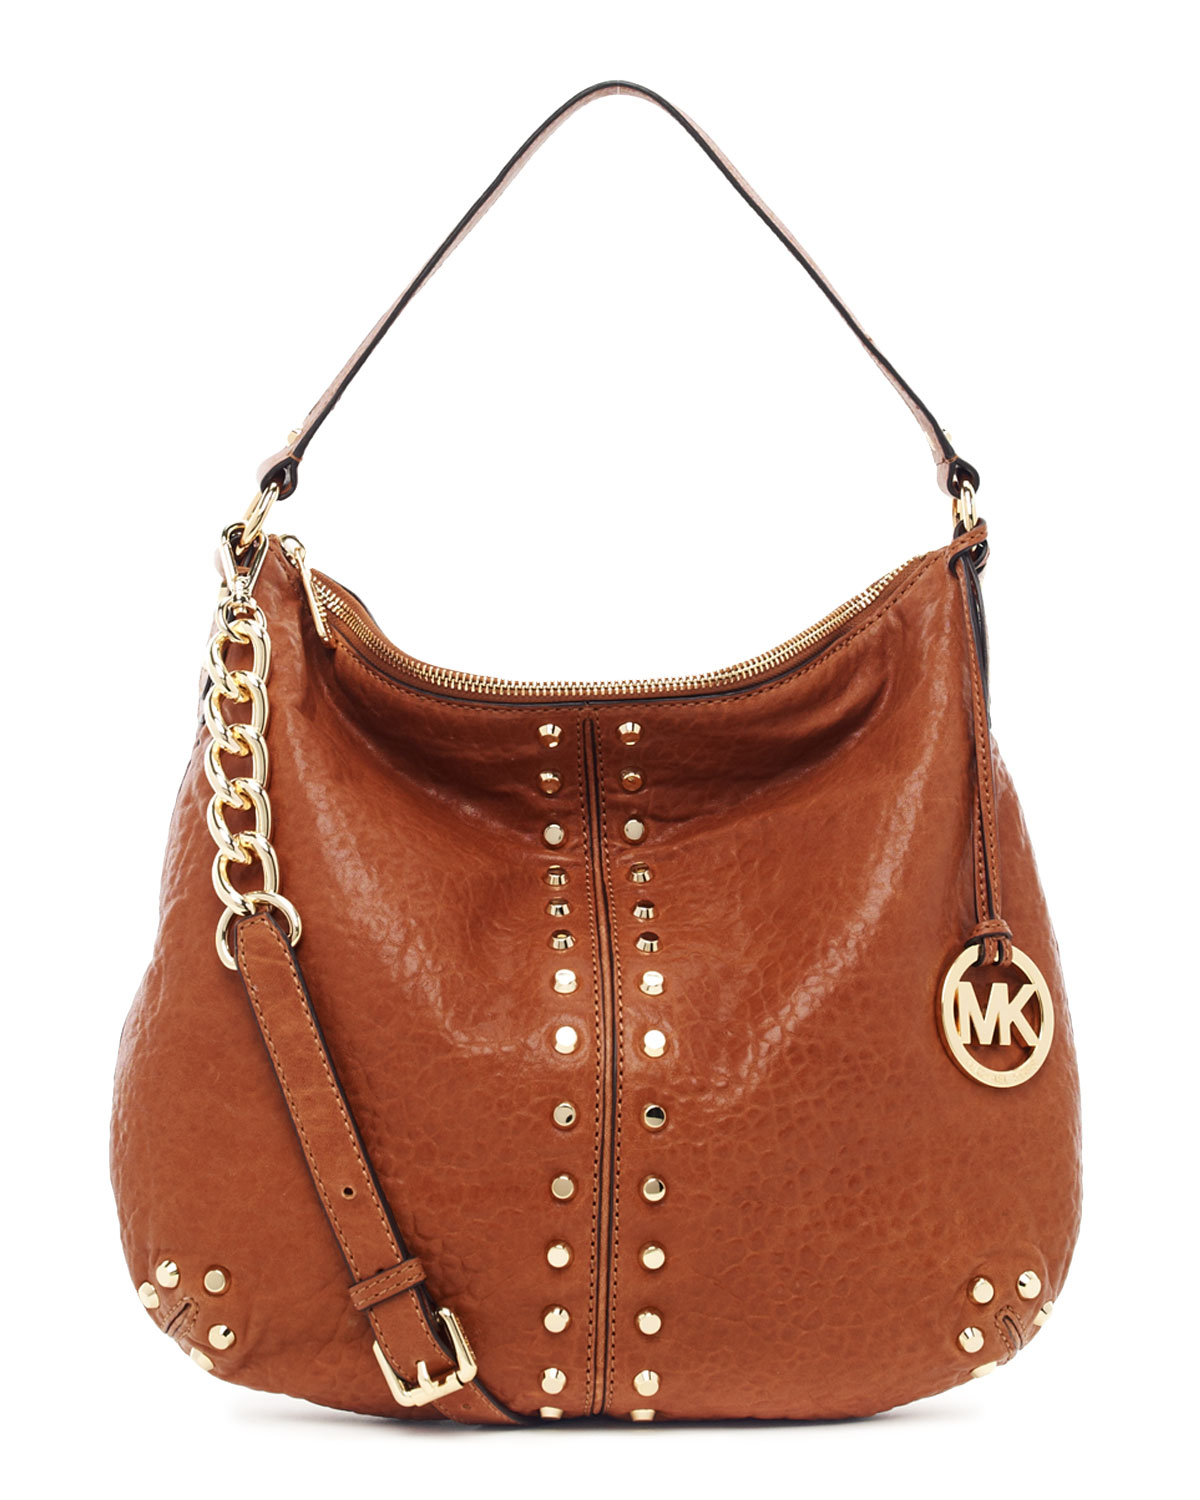 e163e5618c83 ... uk lyst michael kors uptown astor large shoulder bag in brown b5b3c  46b51